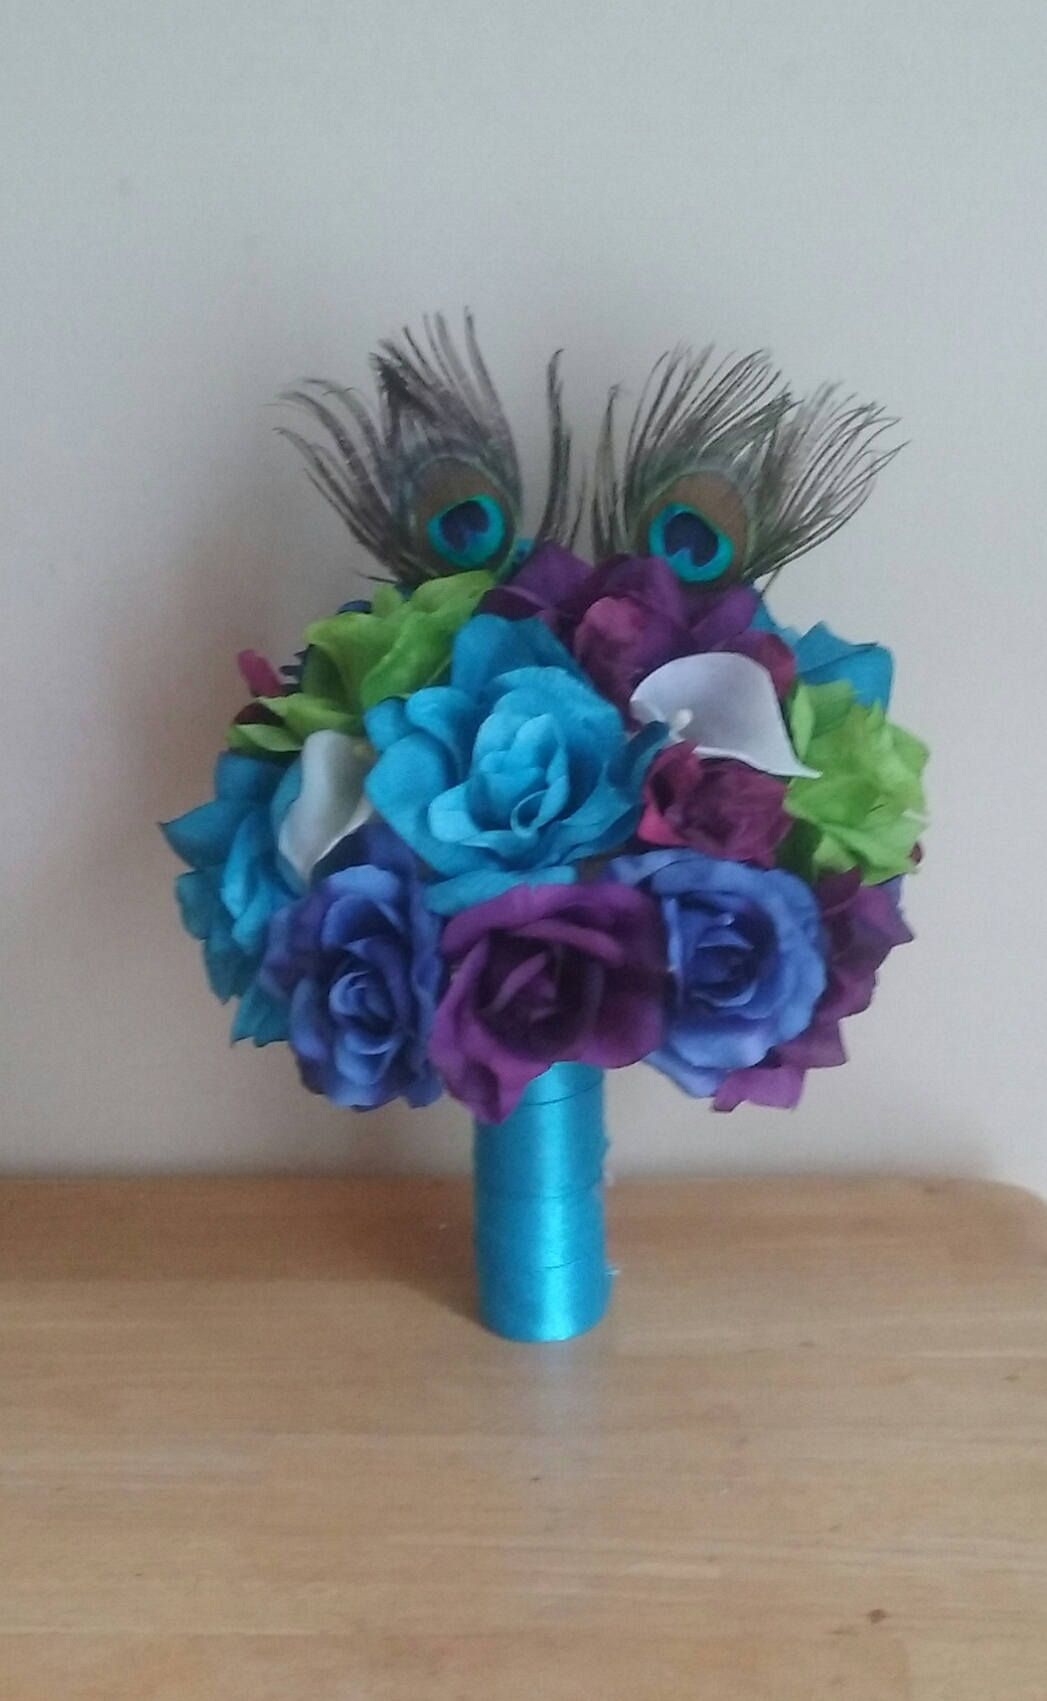 Peacock Wedding Flower Package #weddingflowers #bouquet #peacockwedding #custom #justimaginebyk.com #etsy